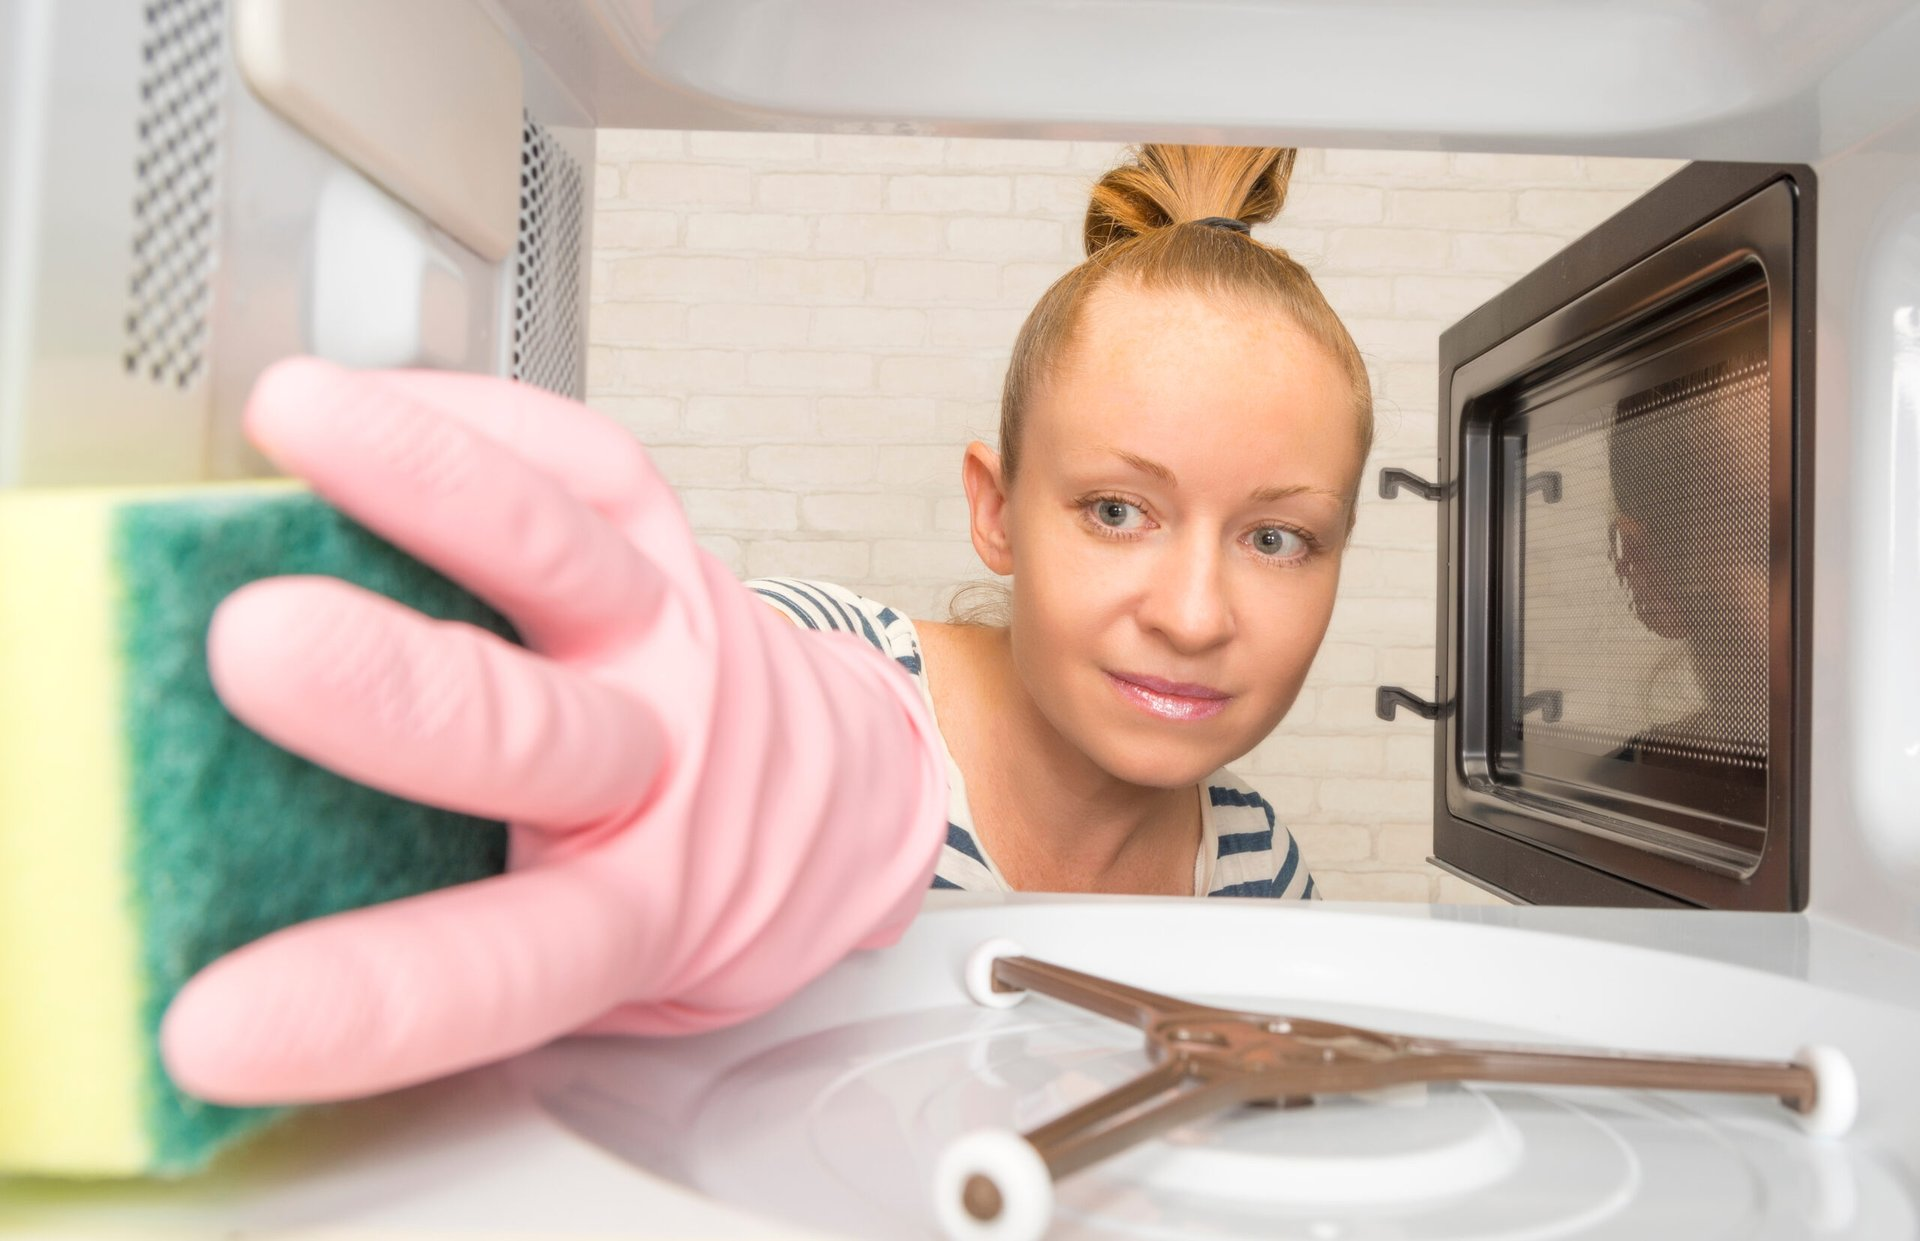 Woman cleans a microwave